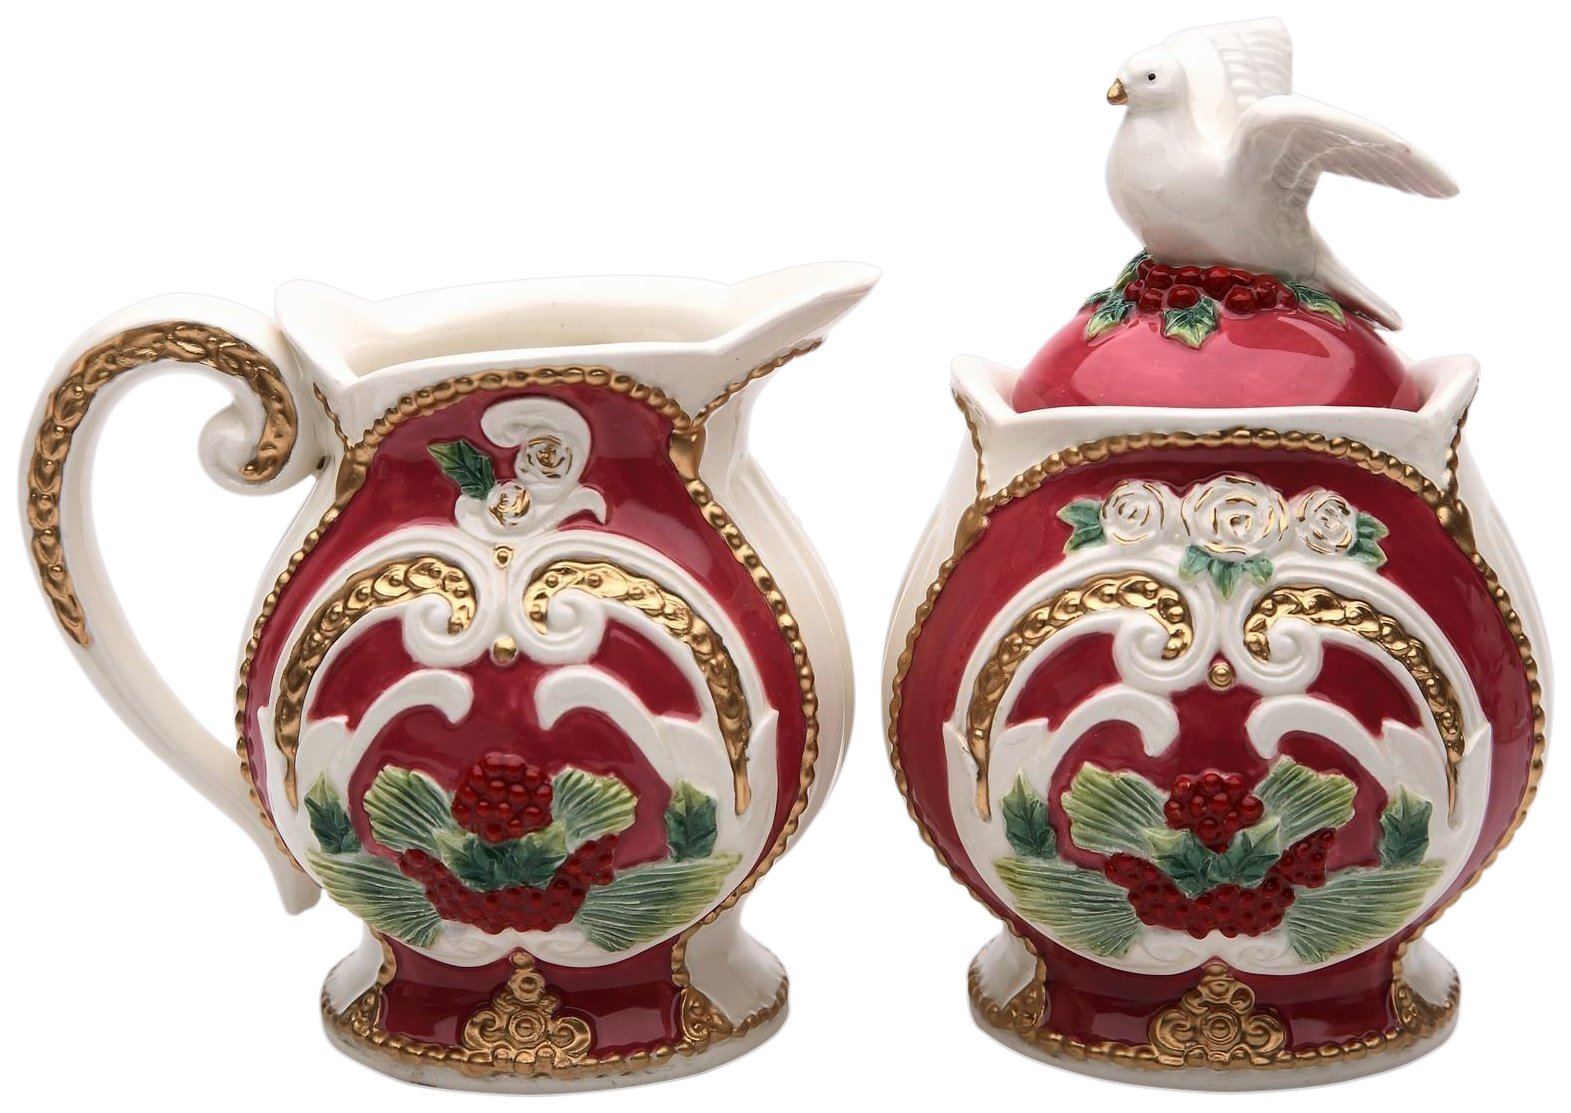 StealStreet SS-CG-10675, 5.25 Inch Porcelain Sugar and Creamer Set in Holiday Design with Dove